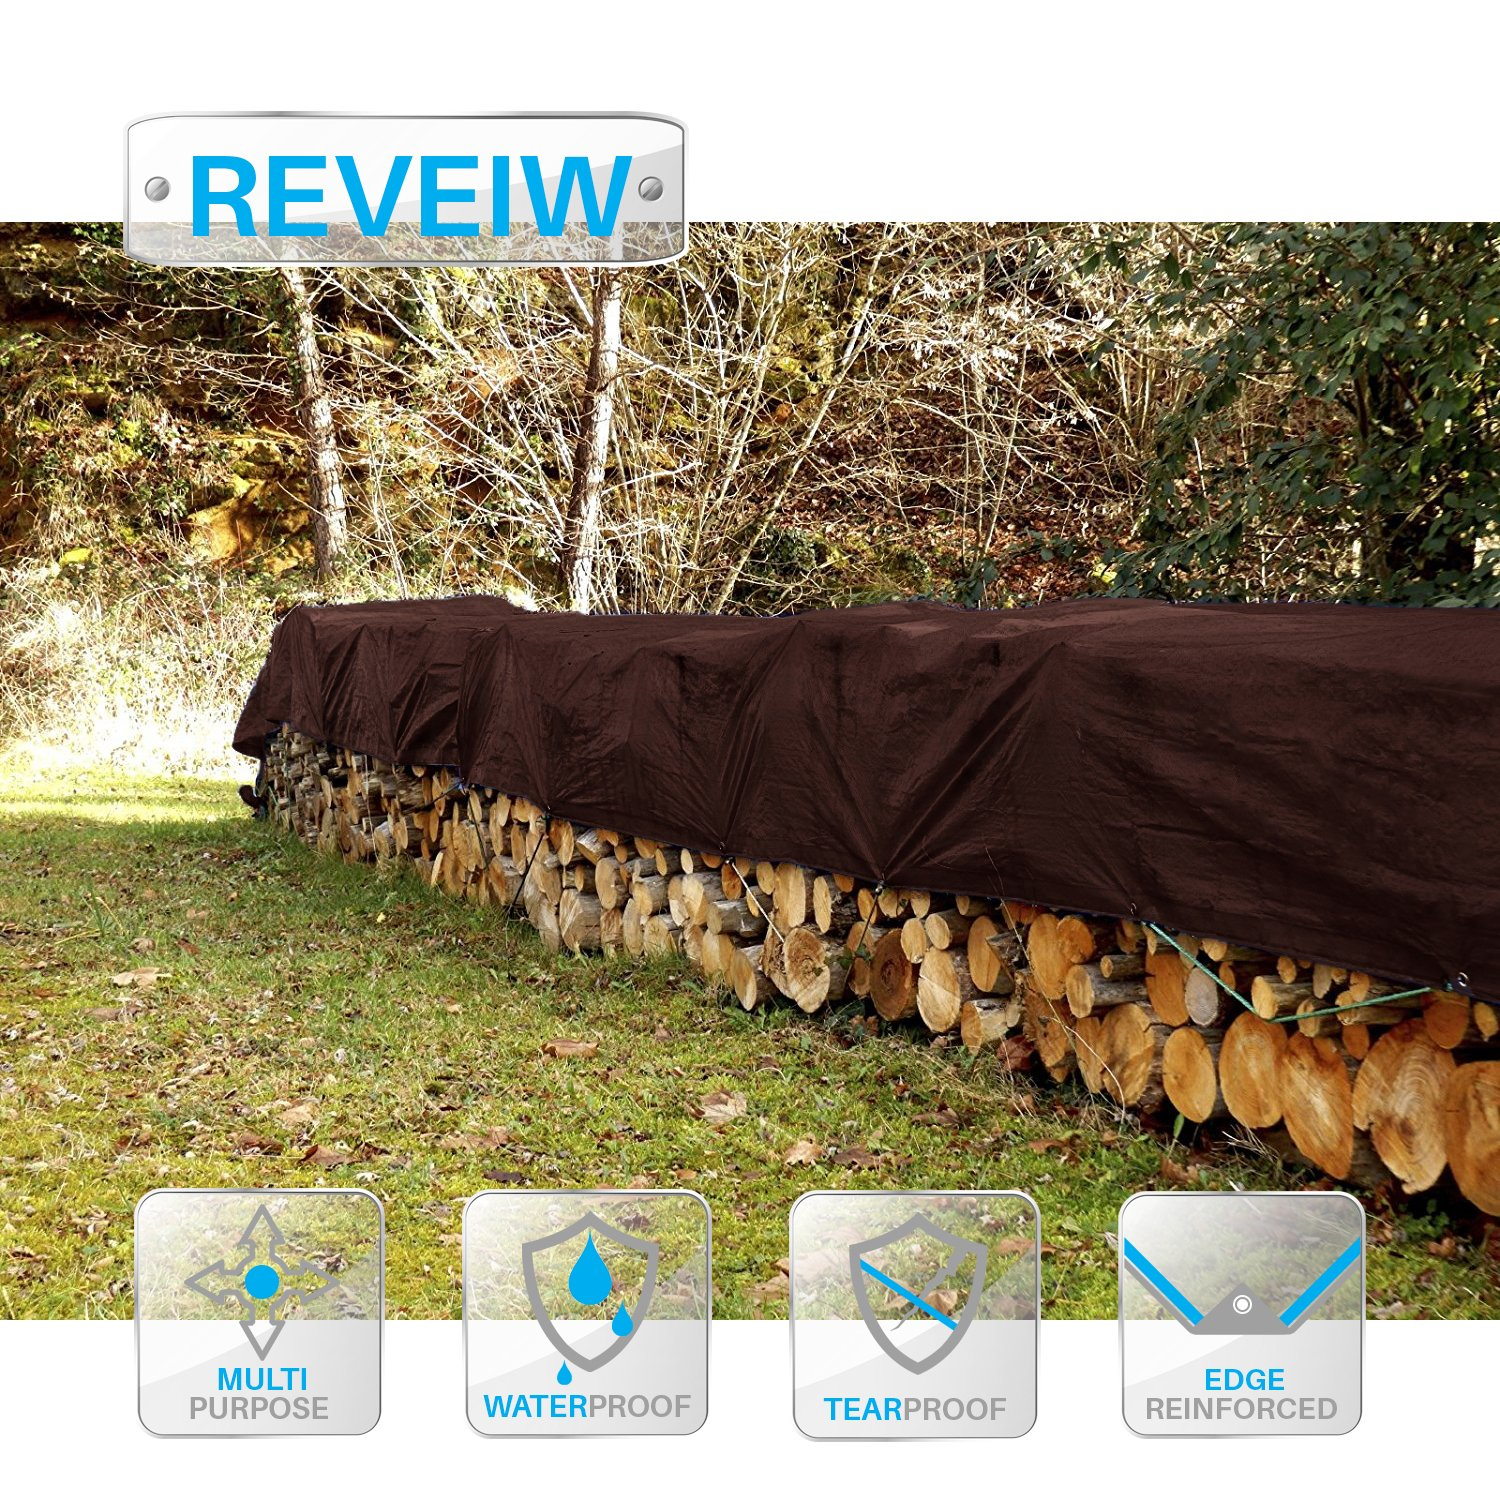 Patio Paradise 6 x 10 Heavy Duty Blue Poly Tarps Waterproof Great for Tarpaulin Canopy Tent Shelter Cover Weather Resistant Strong Reinforced Patio Paradise Inc.